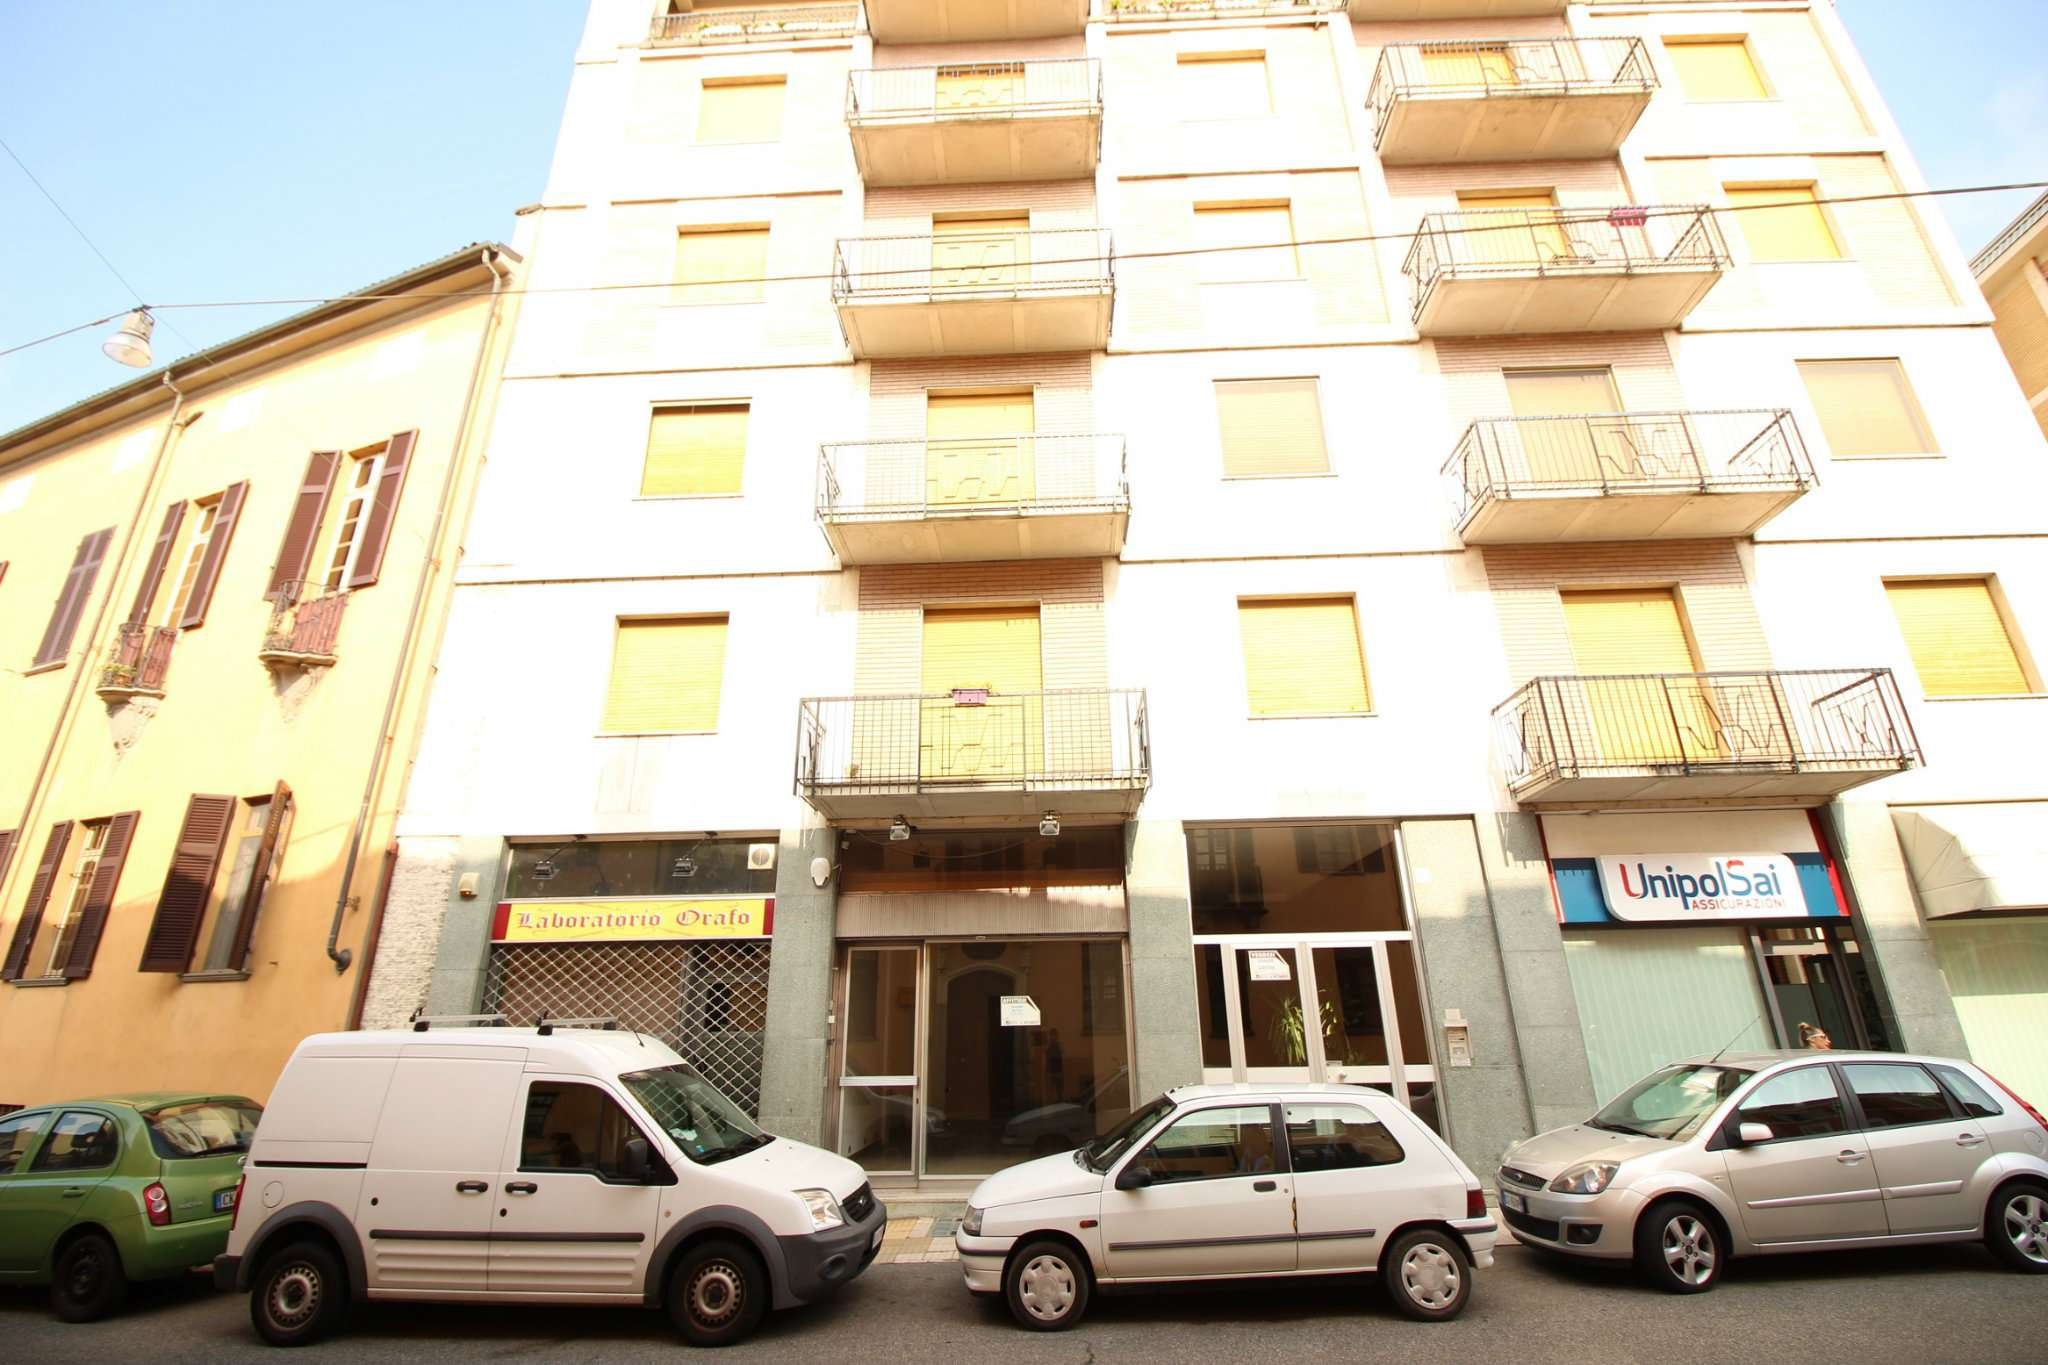 Immobile Commerciale in affitto a Vercelli-http://media.getrix.it/1/6846/2577160416_hd.jpg